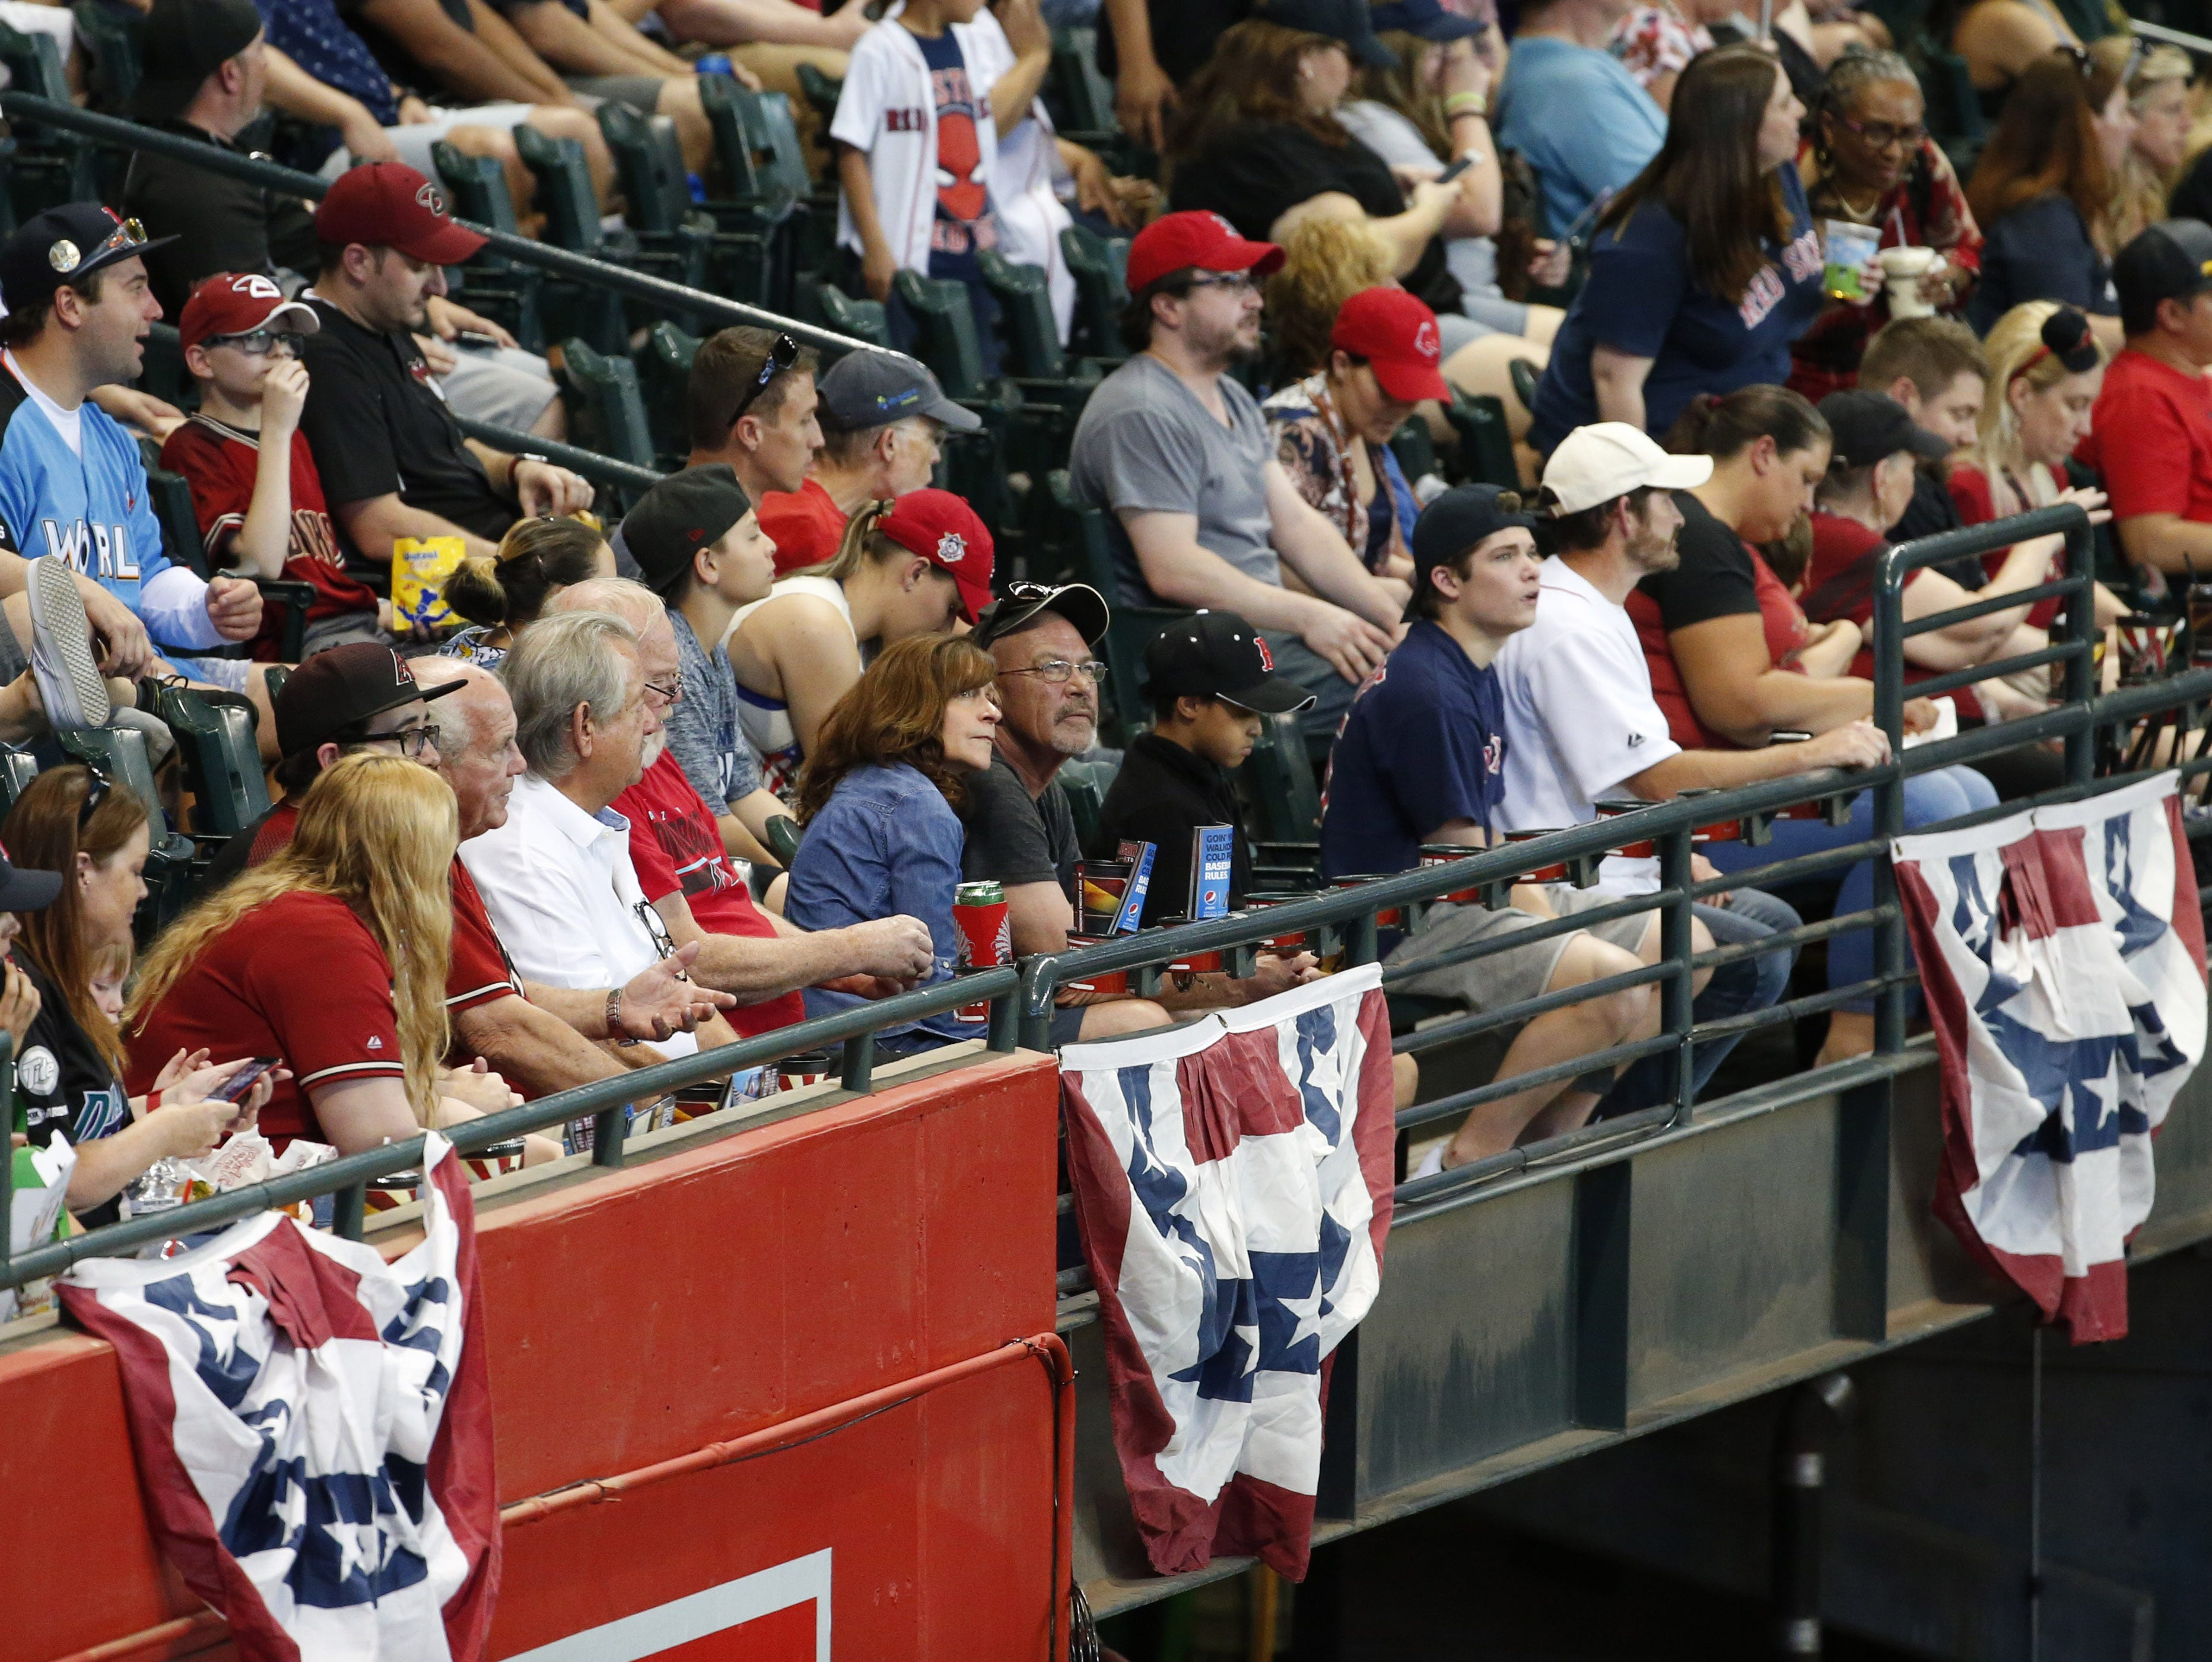 Baseball fans attendOpening Day at Chase Field in Phoenix on April 5.